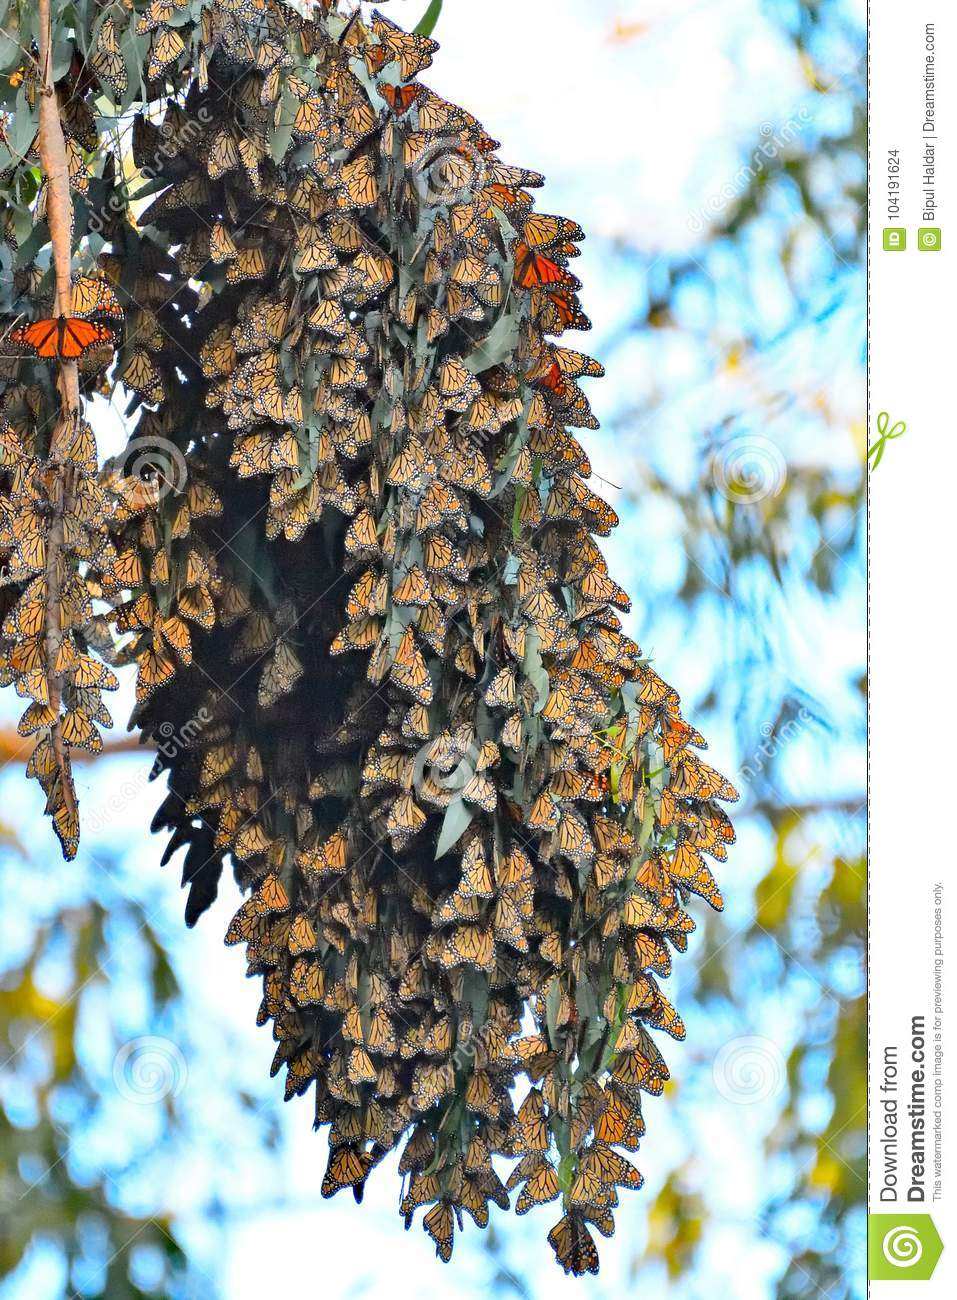 Monarch Butterfly A Long Cluster and colorful wings